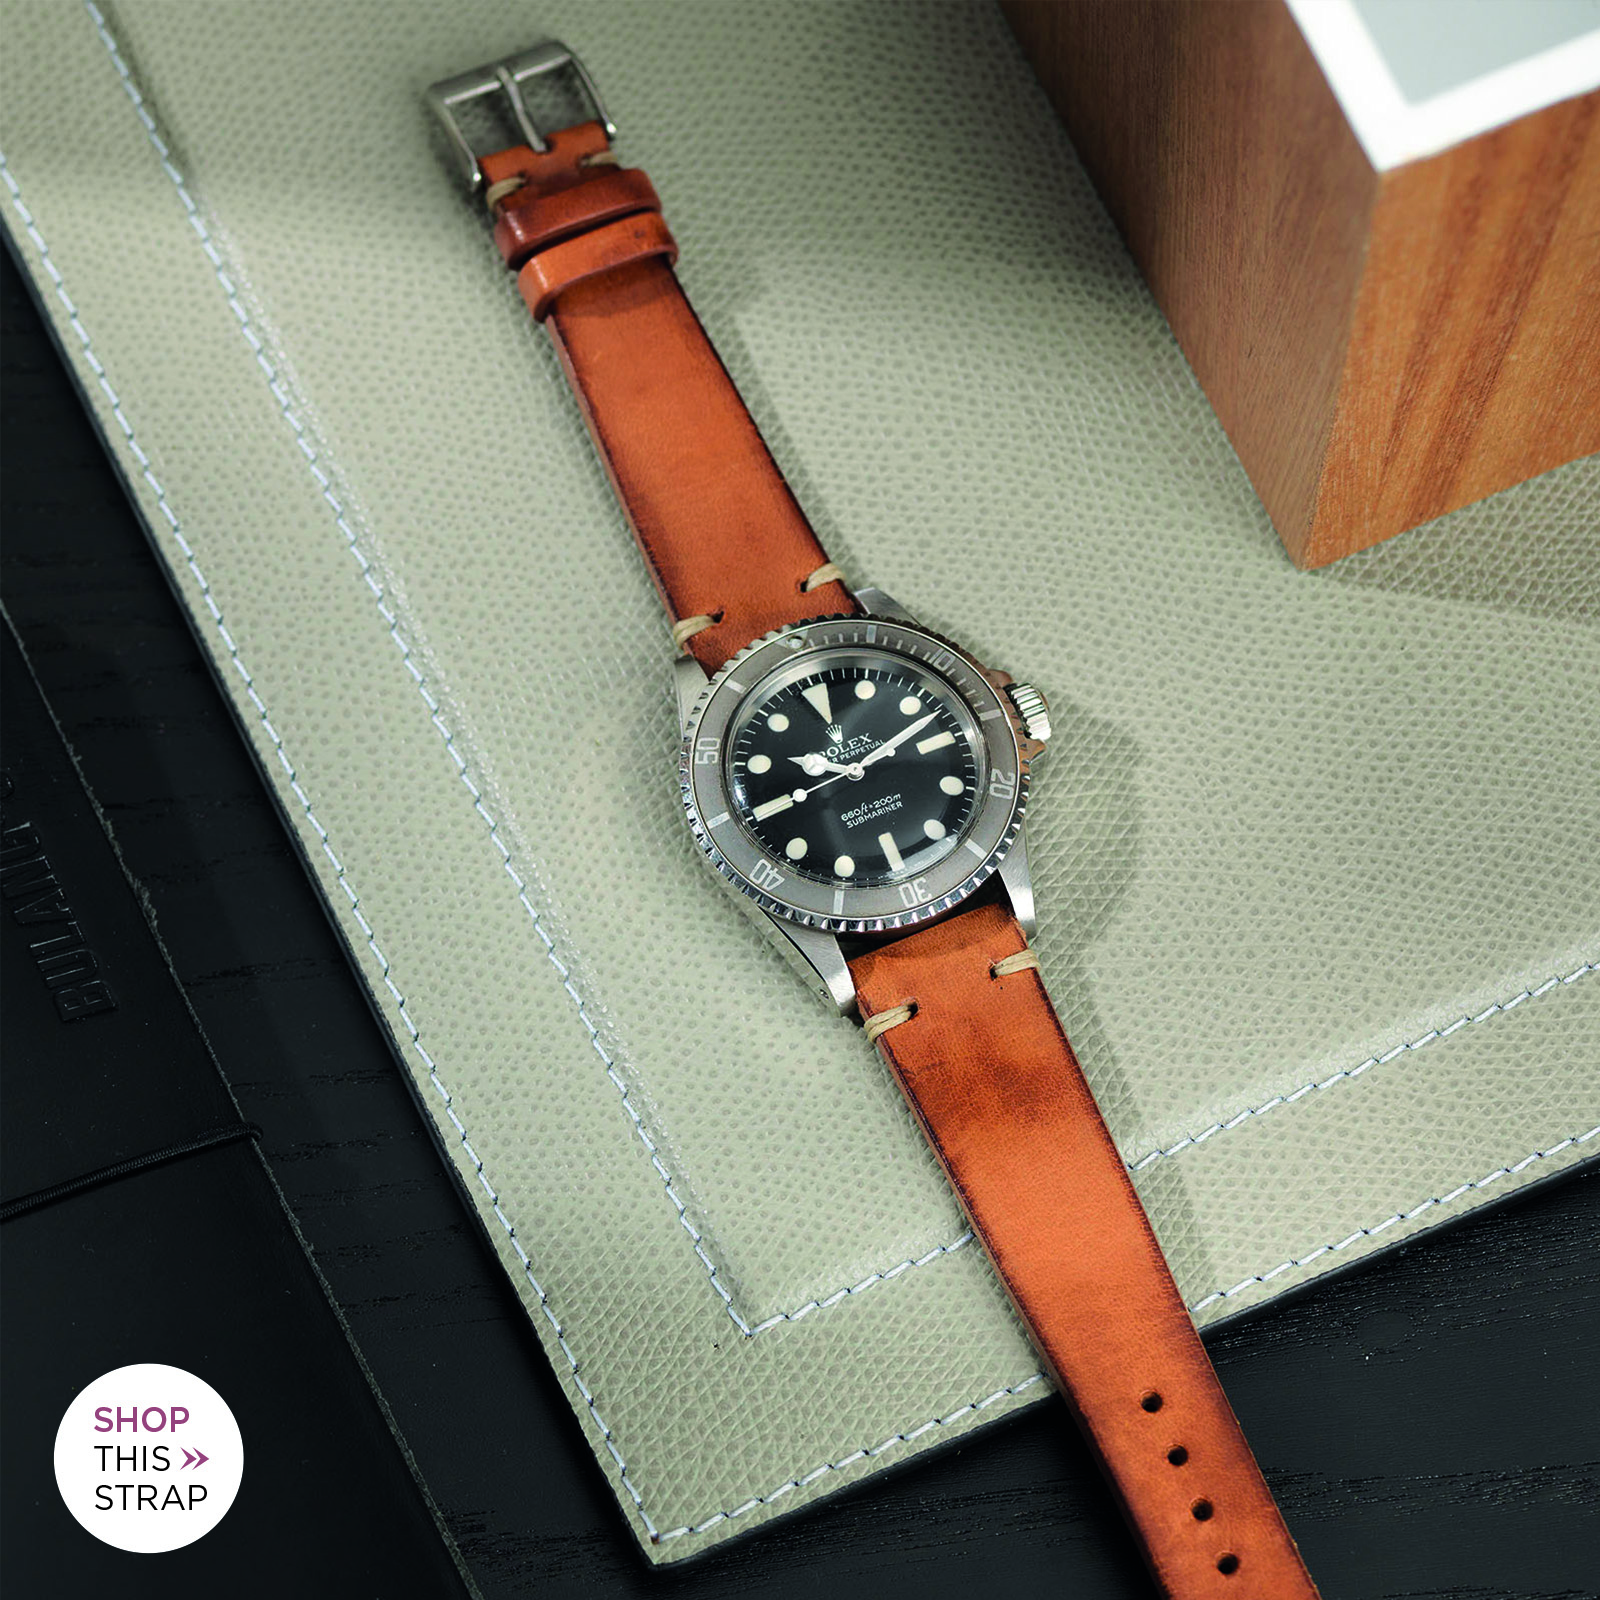 The Rolex 5513 Faded Maxi Submariner Leather strap guide